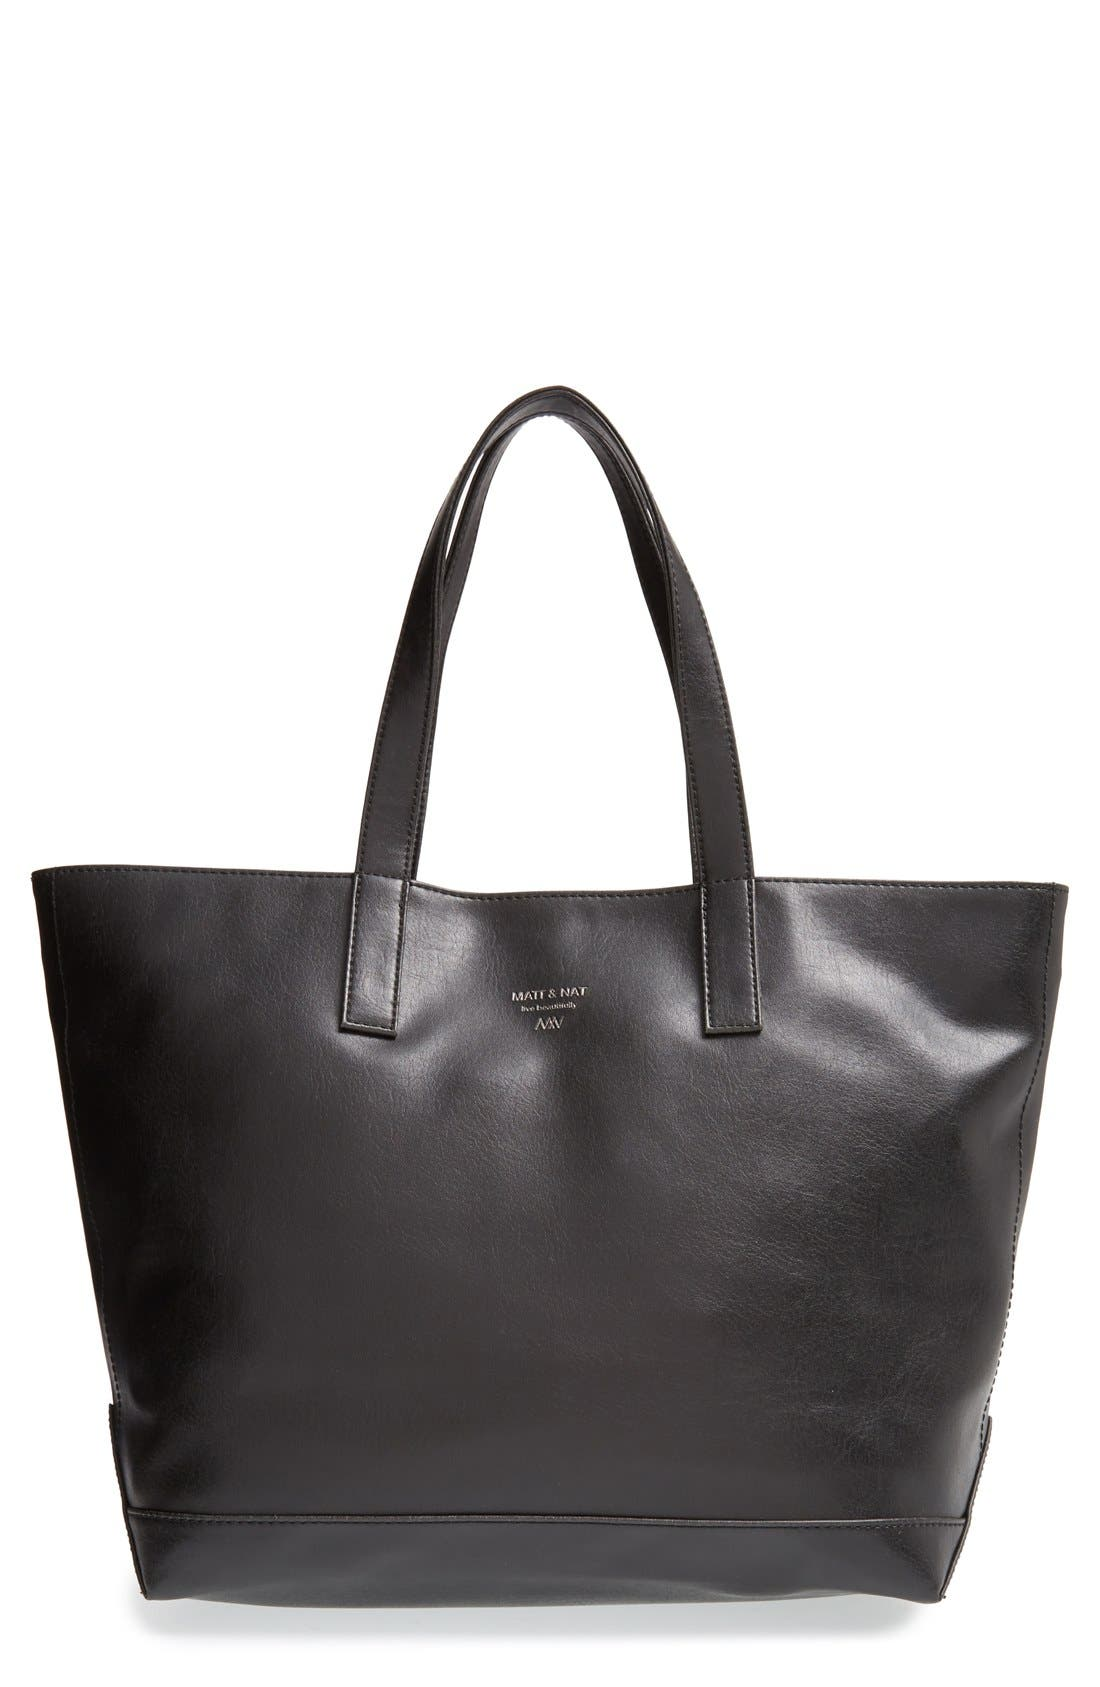 Main Image - Matt & Nat 'Schlepp' Vegan Leather Tote